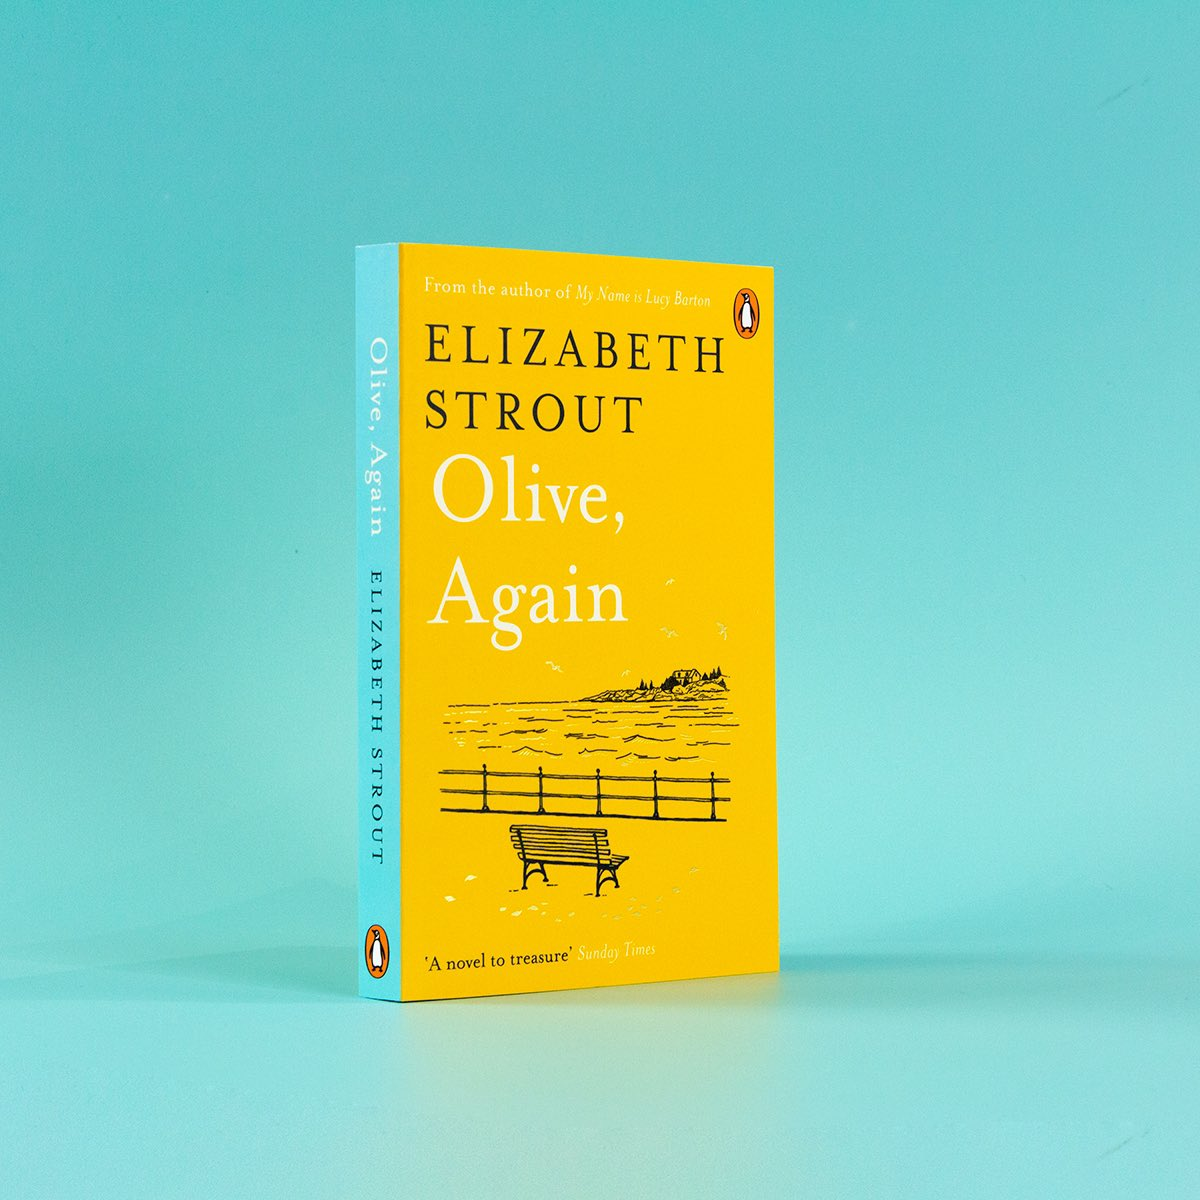 Olive, Again by @LizStrout is out now in paperback ✨✨✨✨✨ https://t.co/eOciWlu56Q